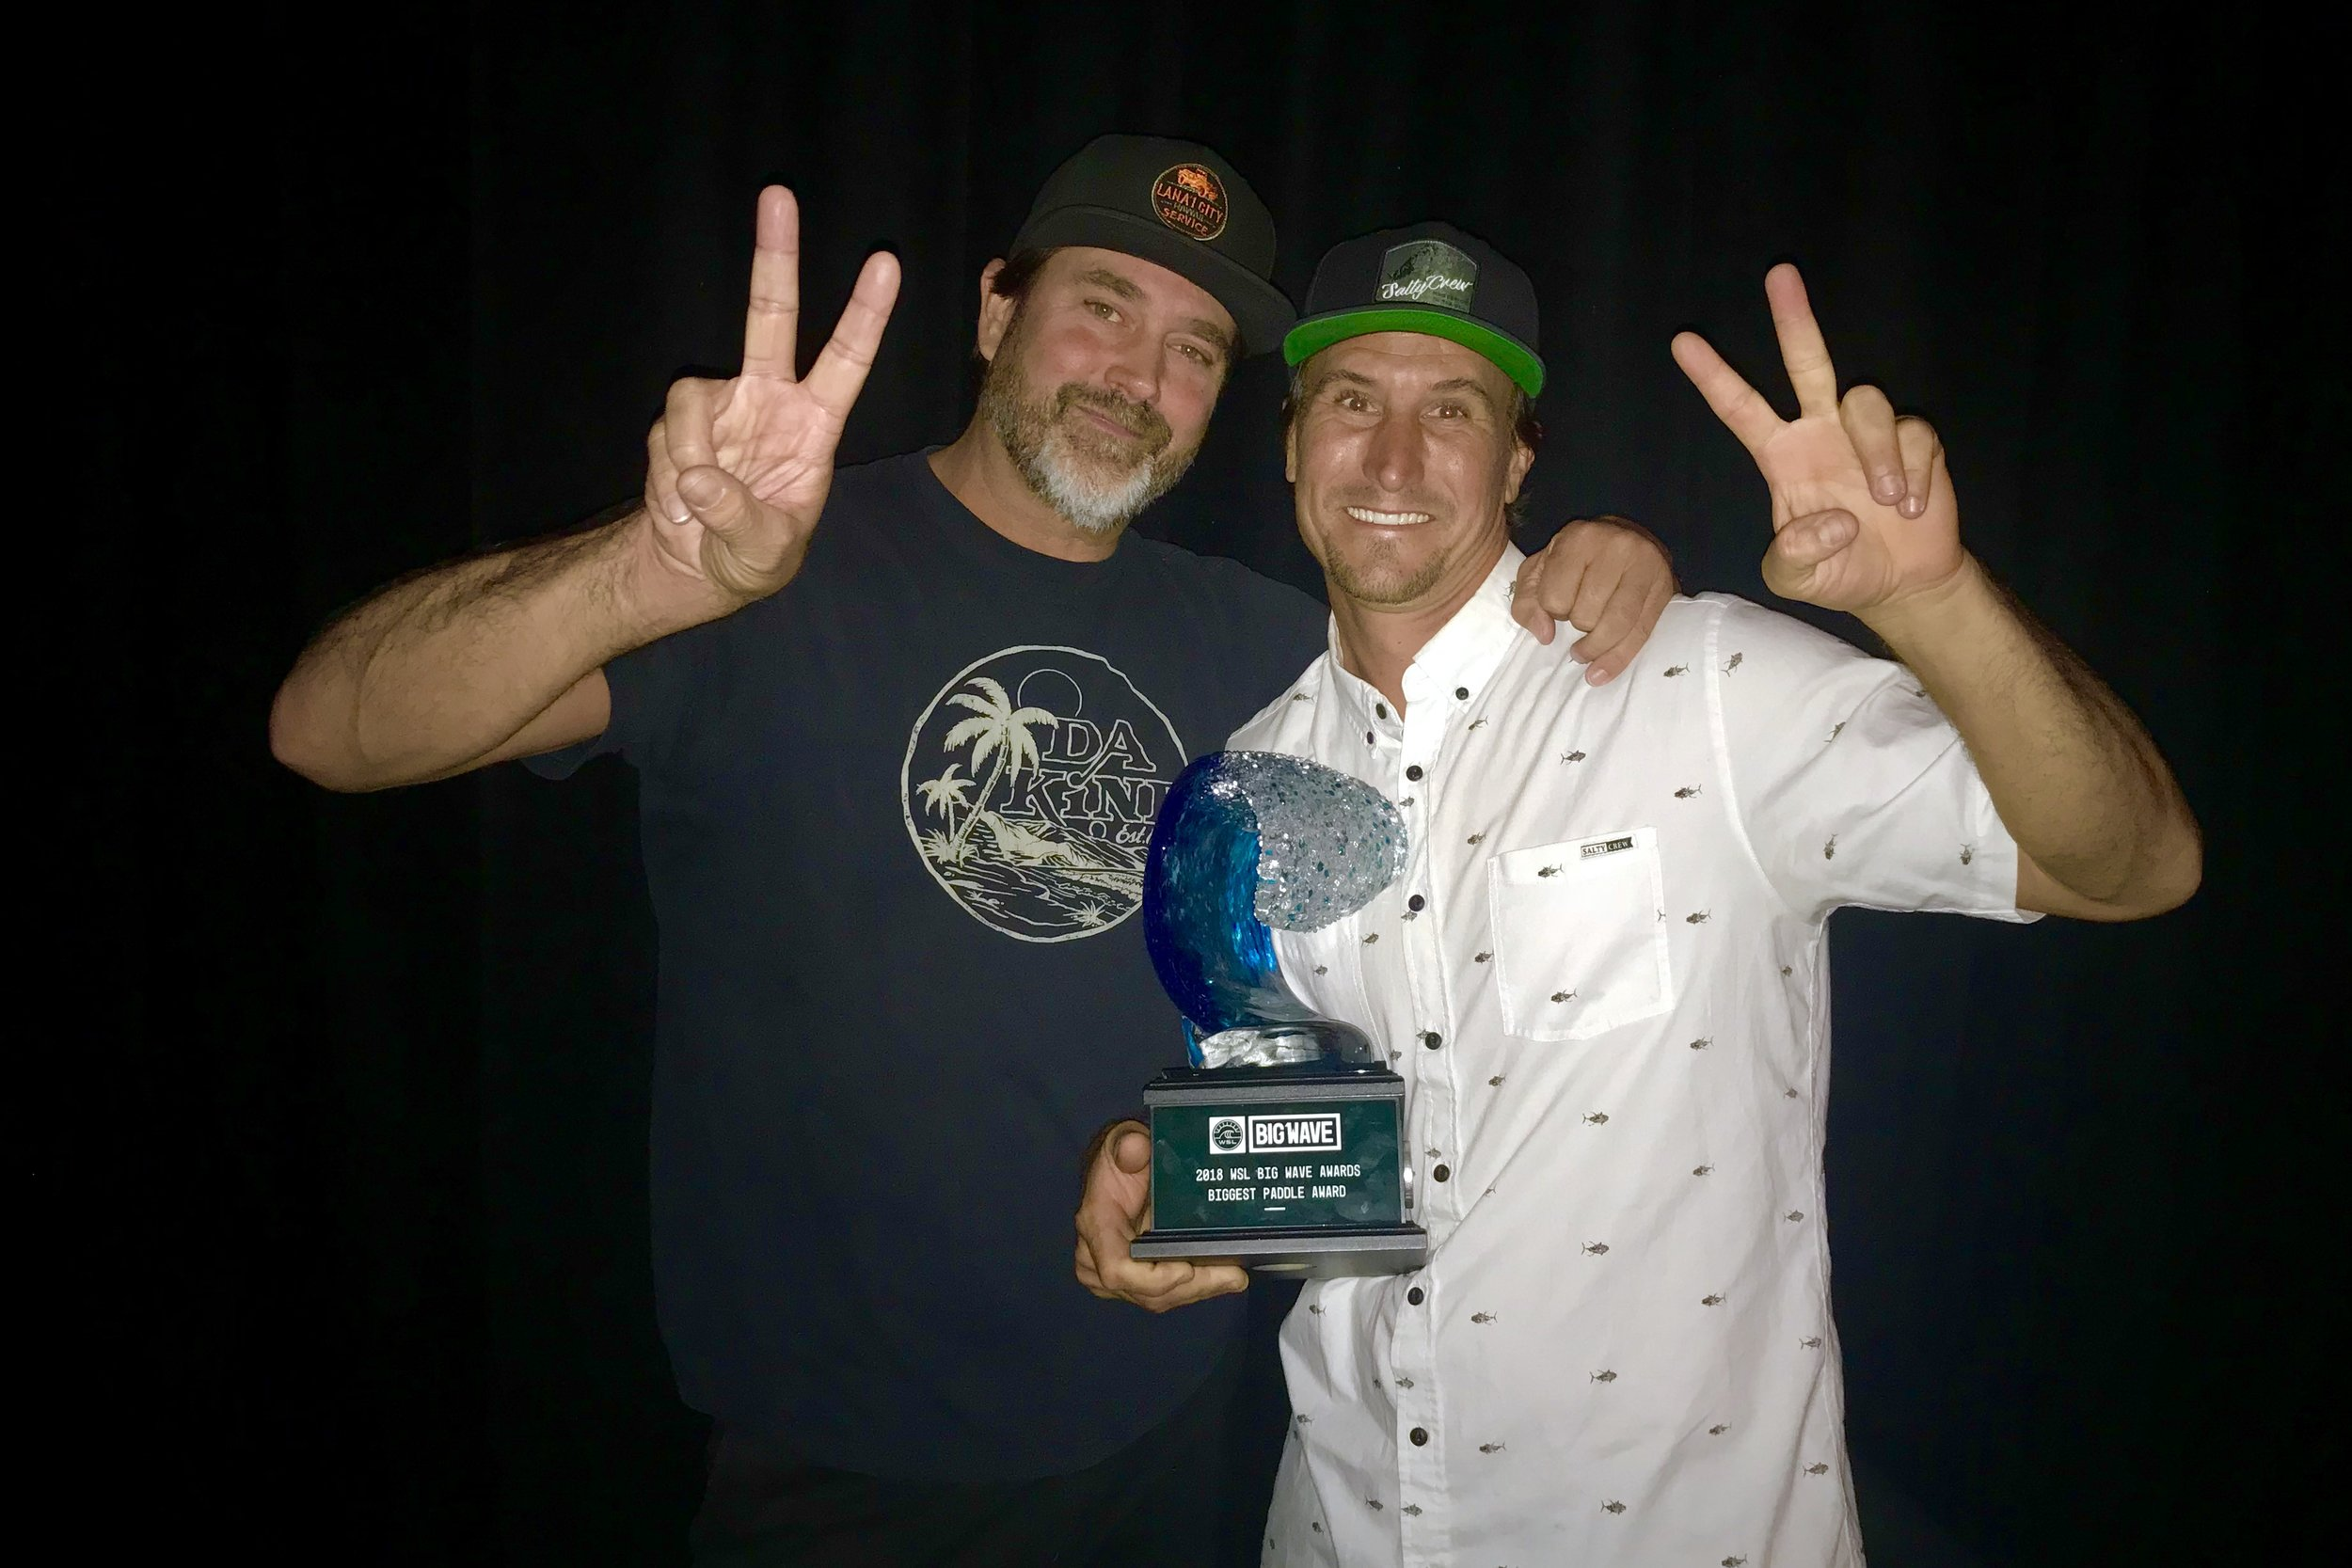 April 28, 2018 - WSL Big Wave Awards - Photographer Brent Broza & Surfer, Aaron Gold, 2X Award Winners at Jaws in 2016 & 2018